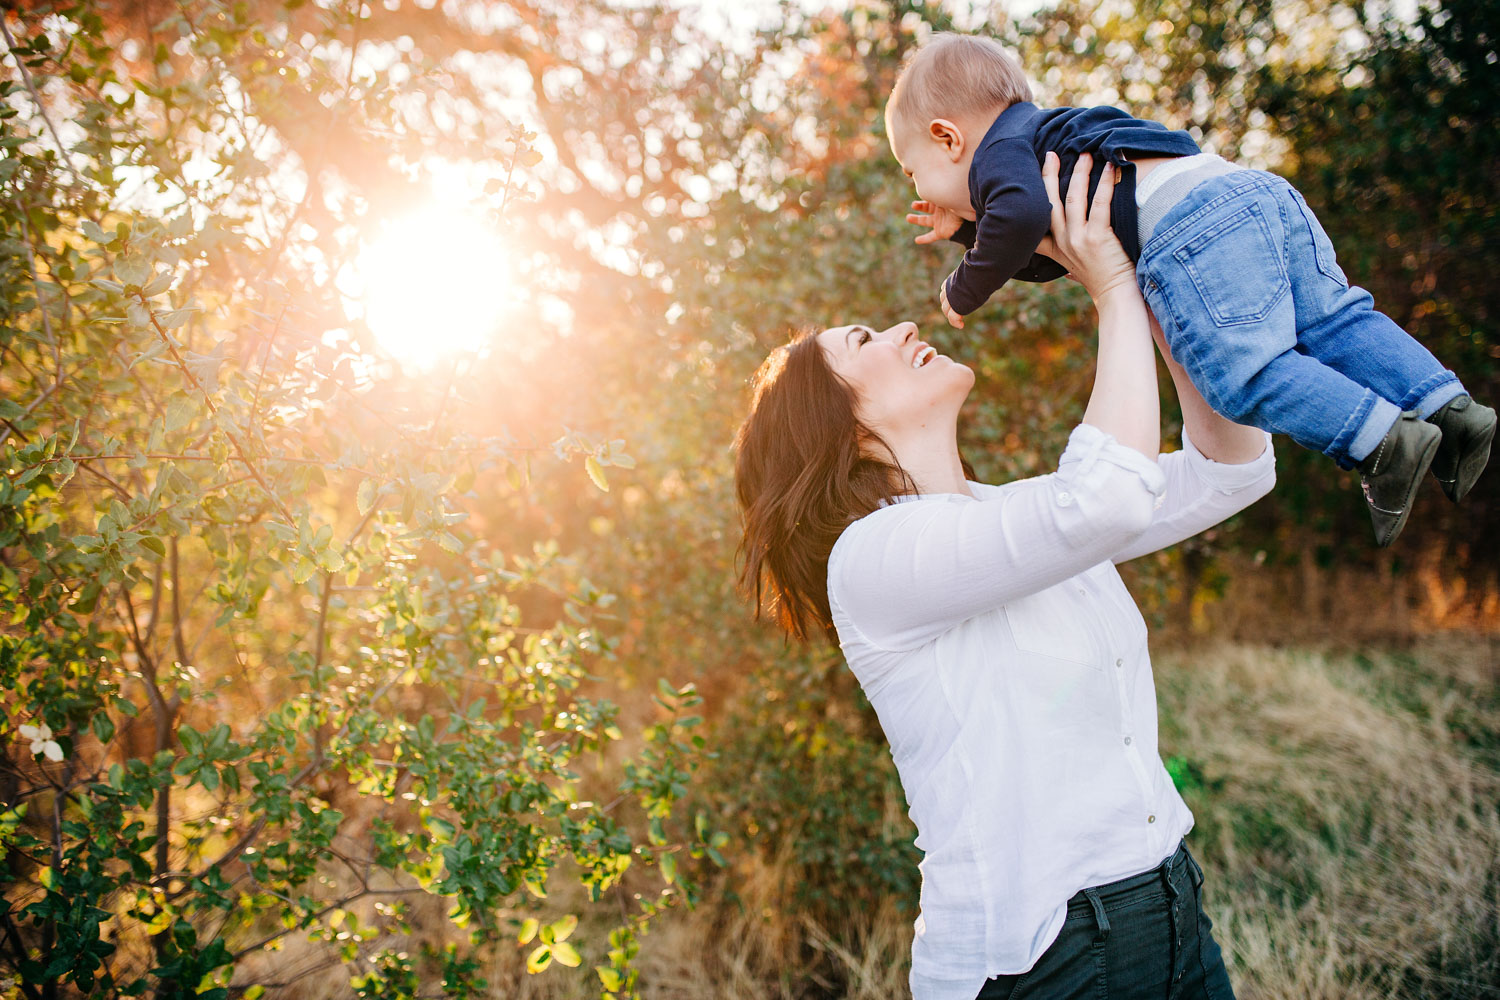 A mother joyfully lifts her baby boy into the air during a fun family photo shoot with Amy Wright Photography in Sacramento, California.